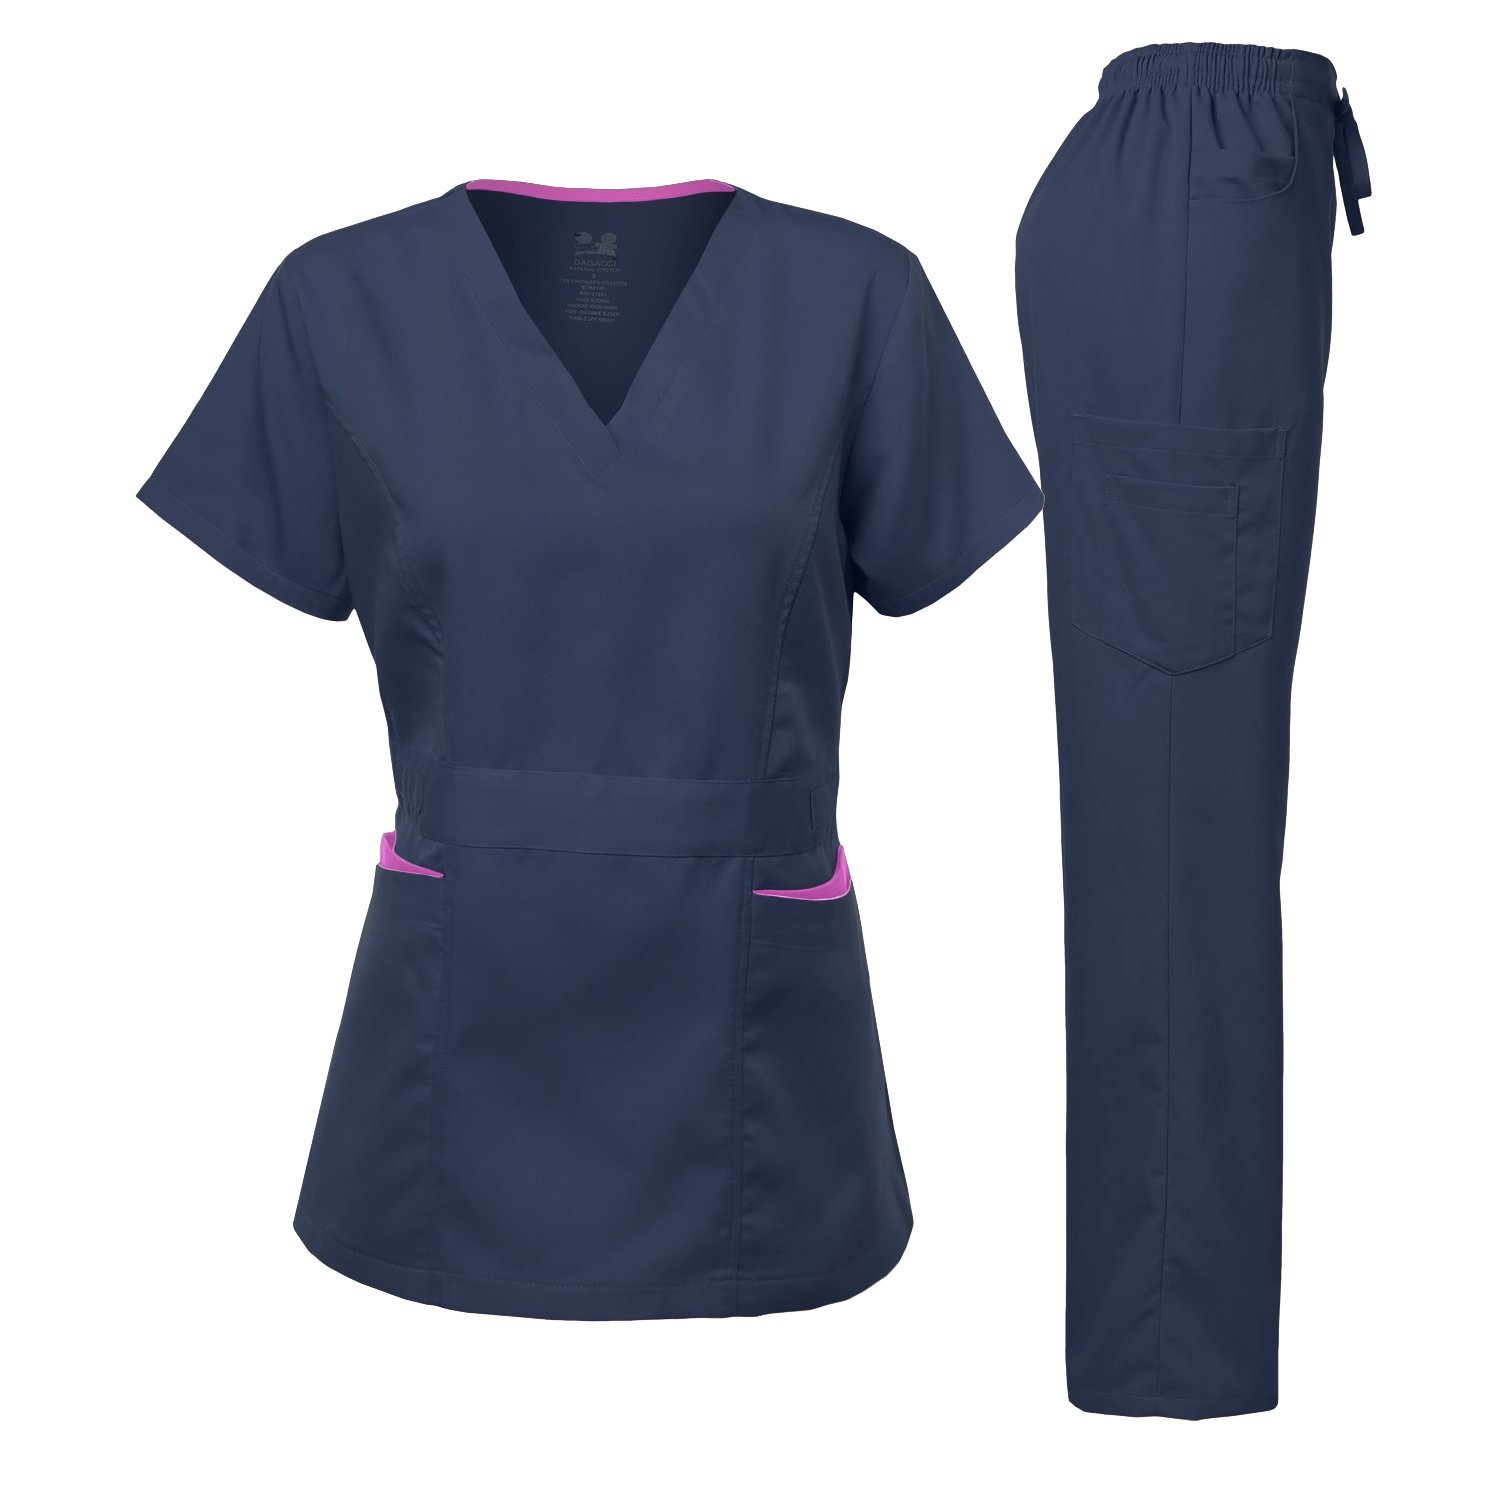 Medical Uniform Women's Scrubs Set Stretch Contrast Pocket Navy M